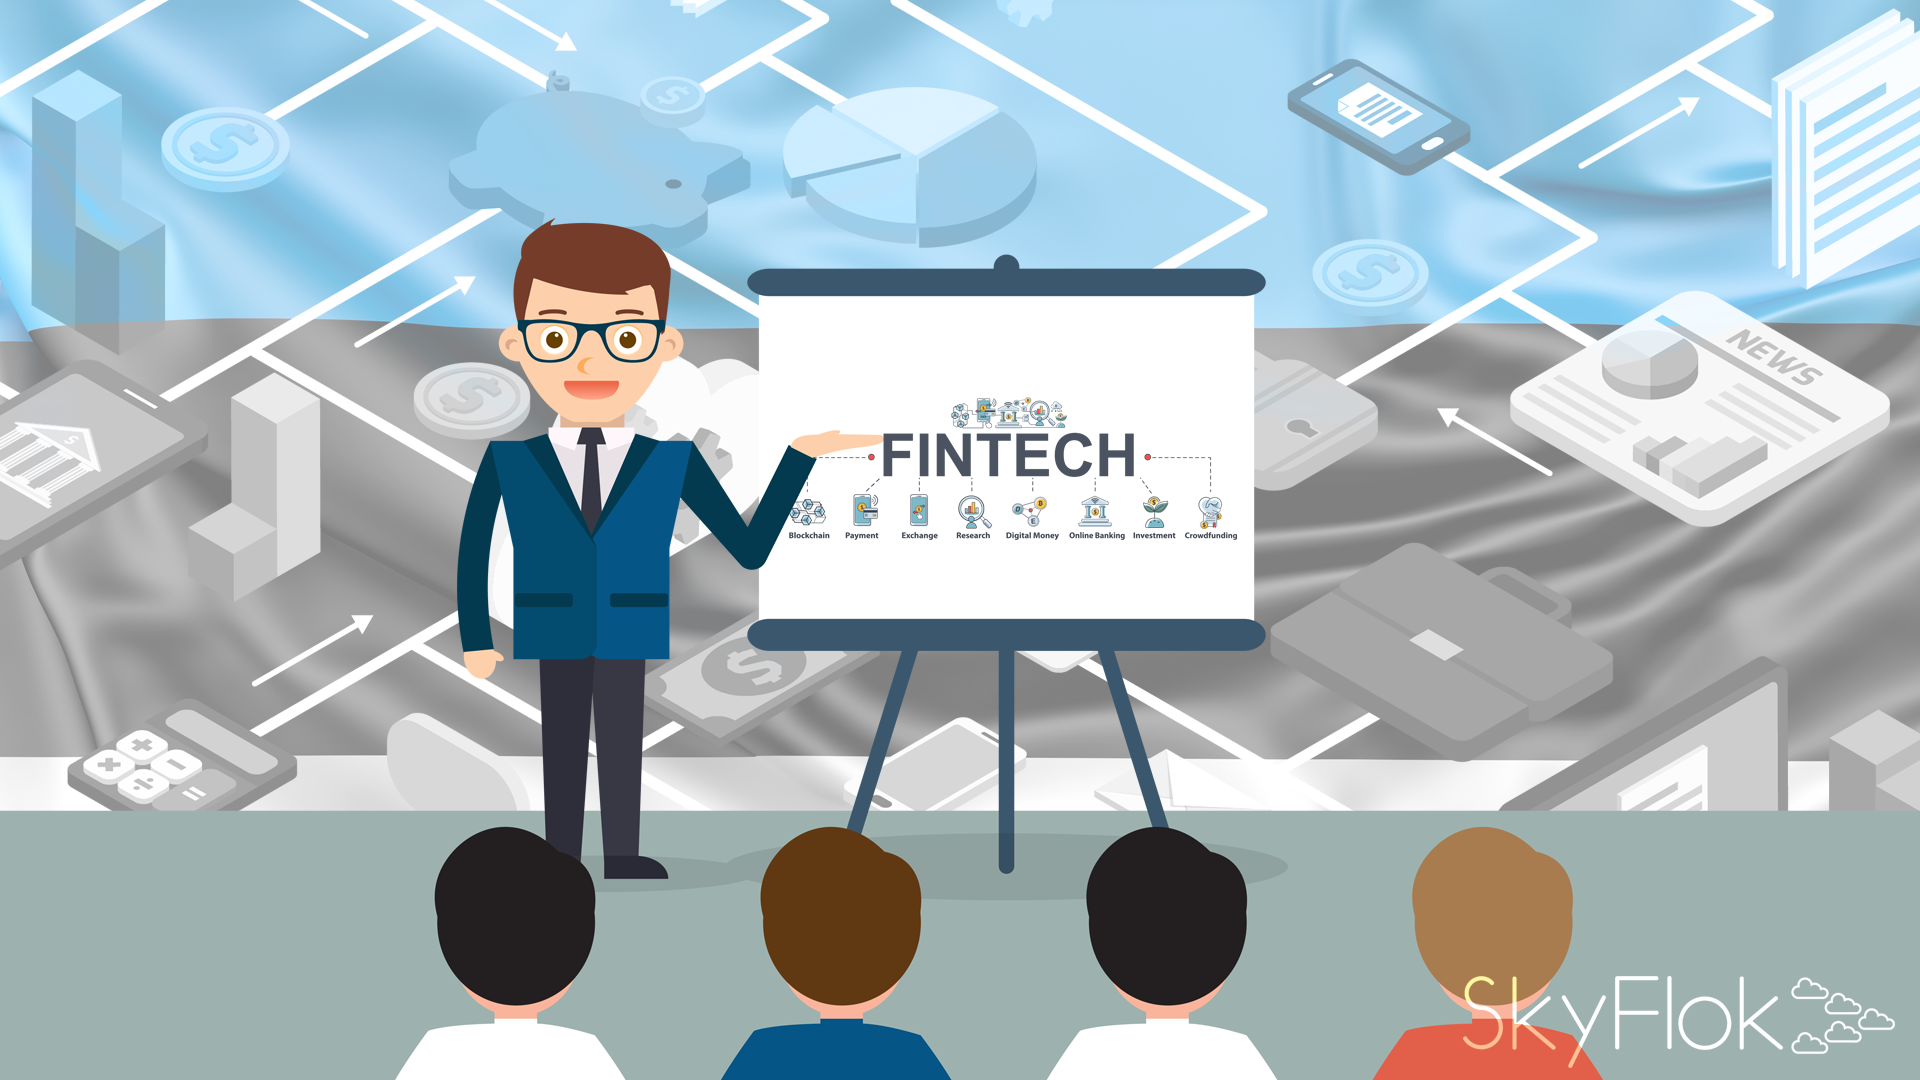 Fintech Meets the Cloud